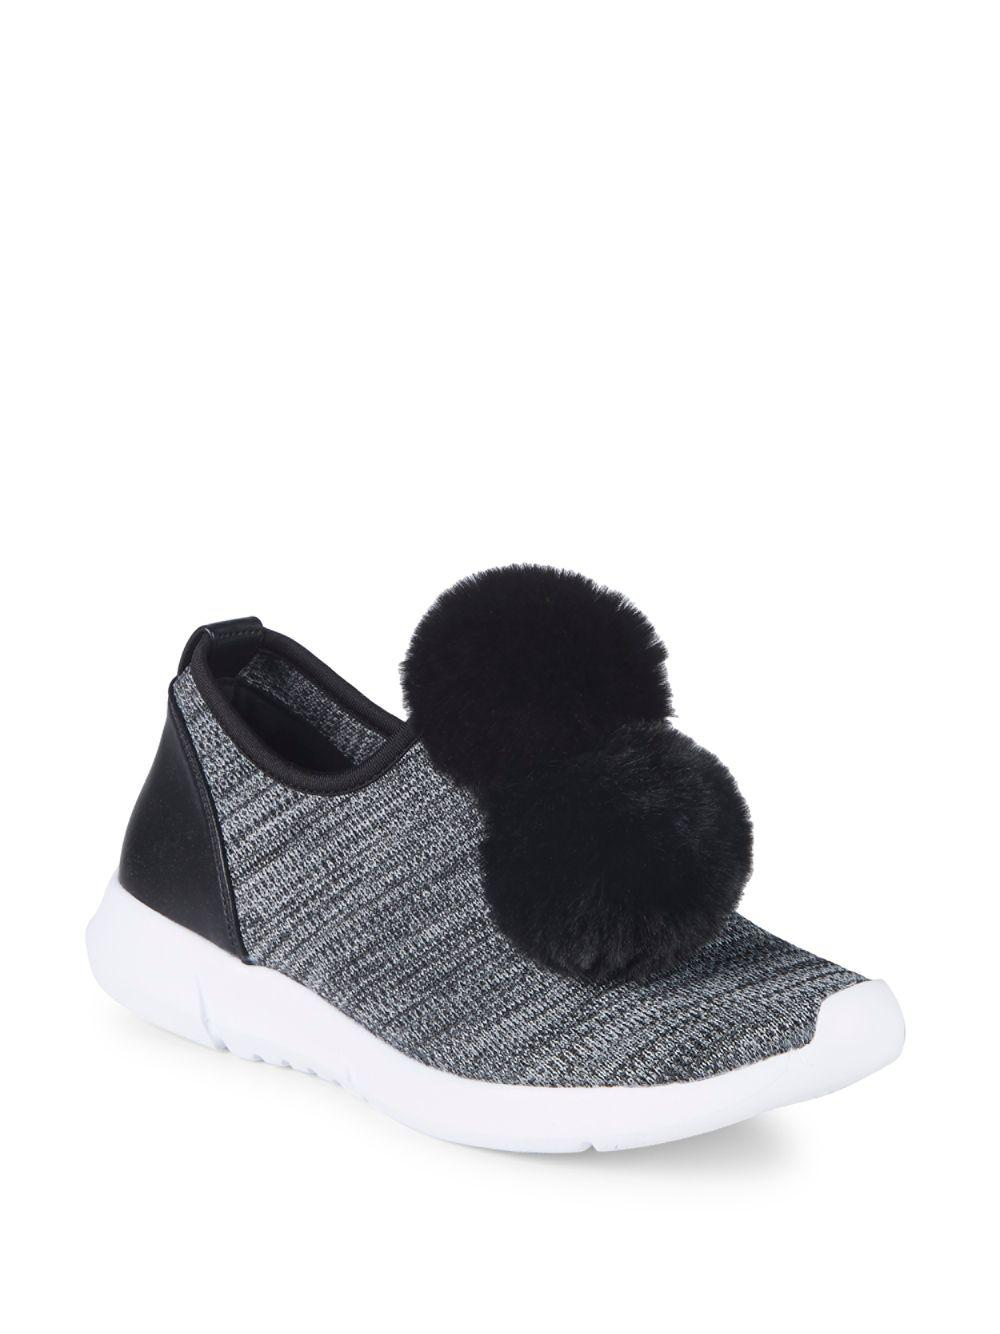 953325b38 Circus by Sam Edelman Lisette Faux Fur Pom-pom Sneakers in Black - Lyst